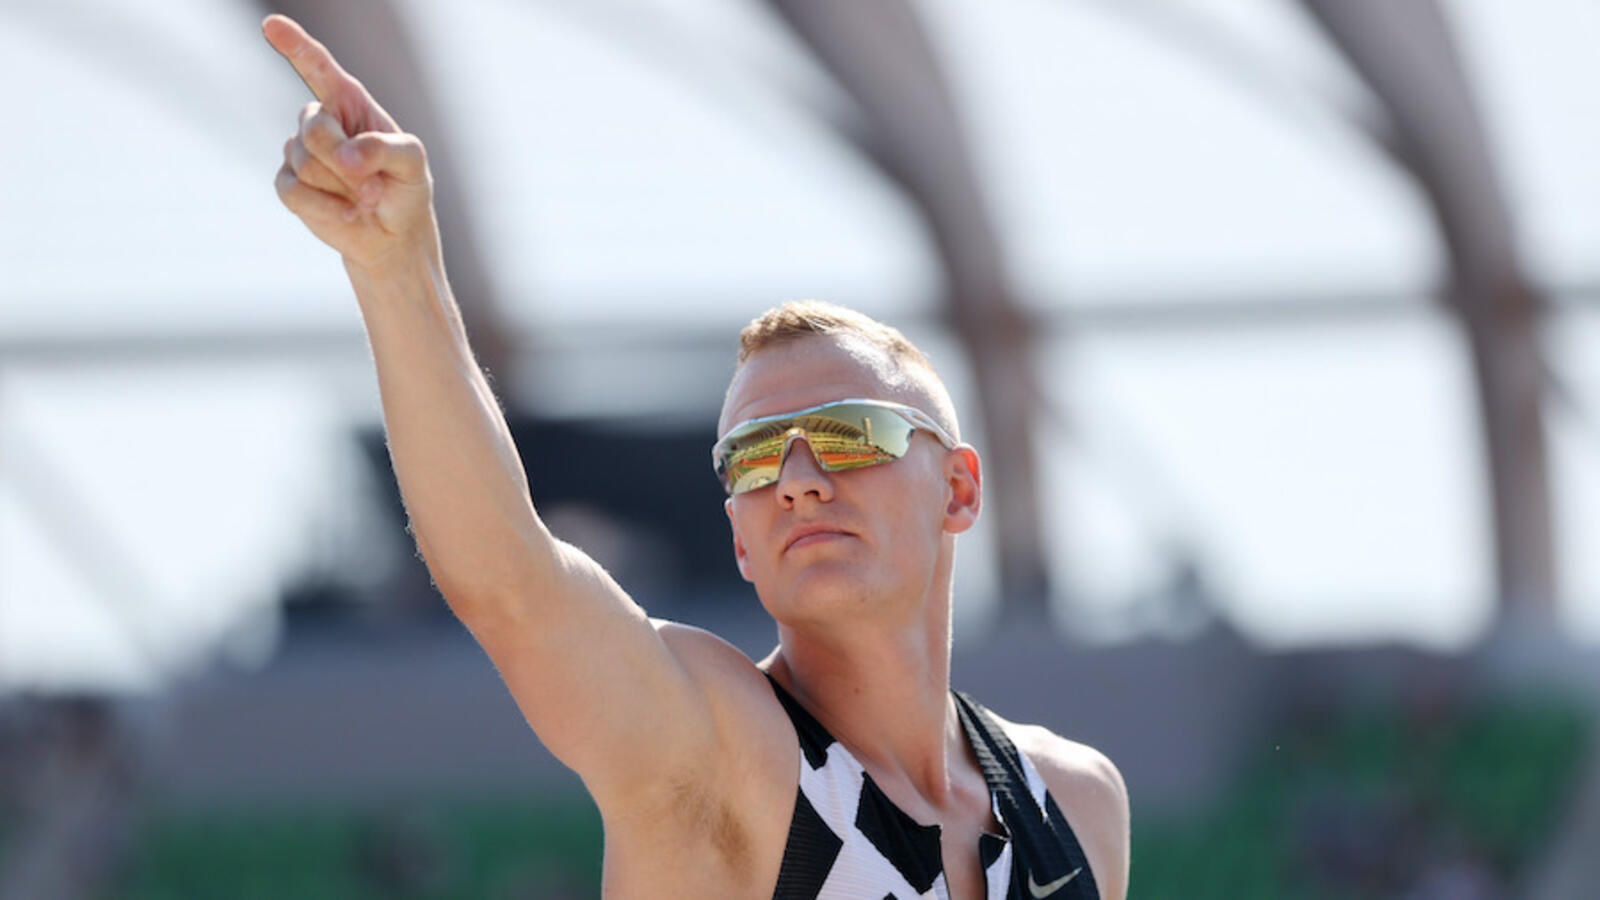 U.S. Pole Vault Champion Tests Positive For COVID-19, Out Of Tokyo Olympics